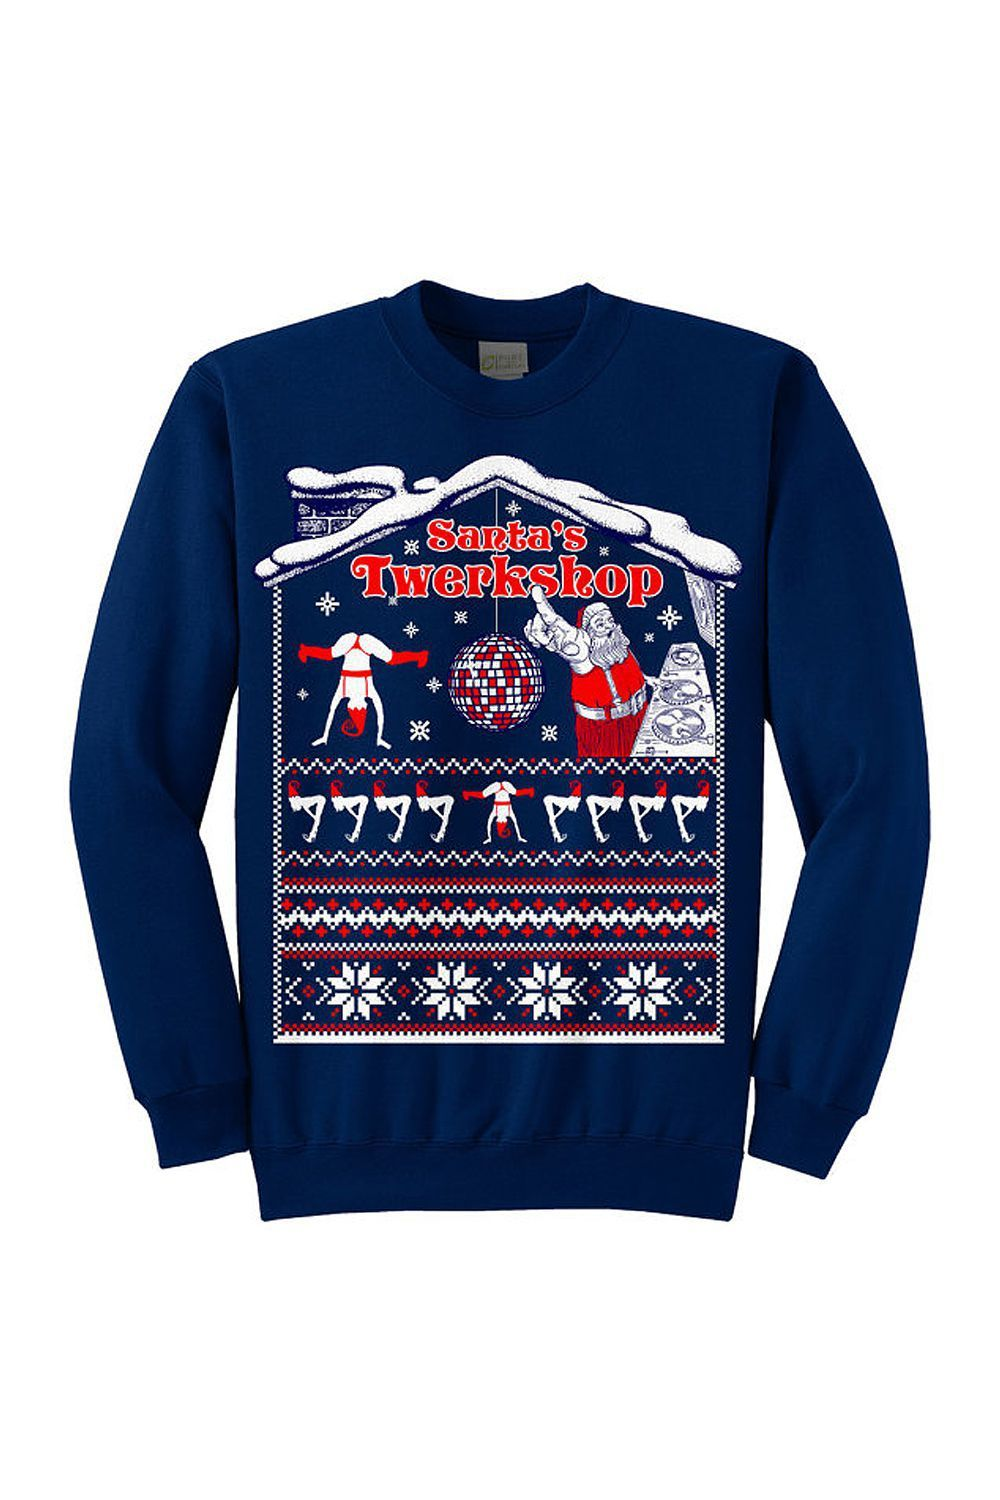 18cc99e8012 The Tackier the Better: 9 Ugly but Great Christmas Sweaters